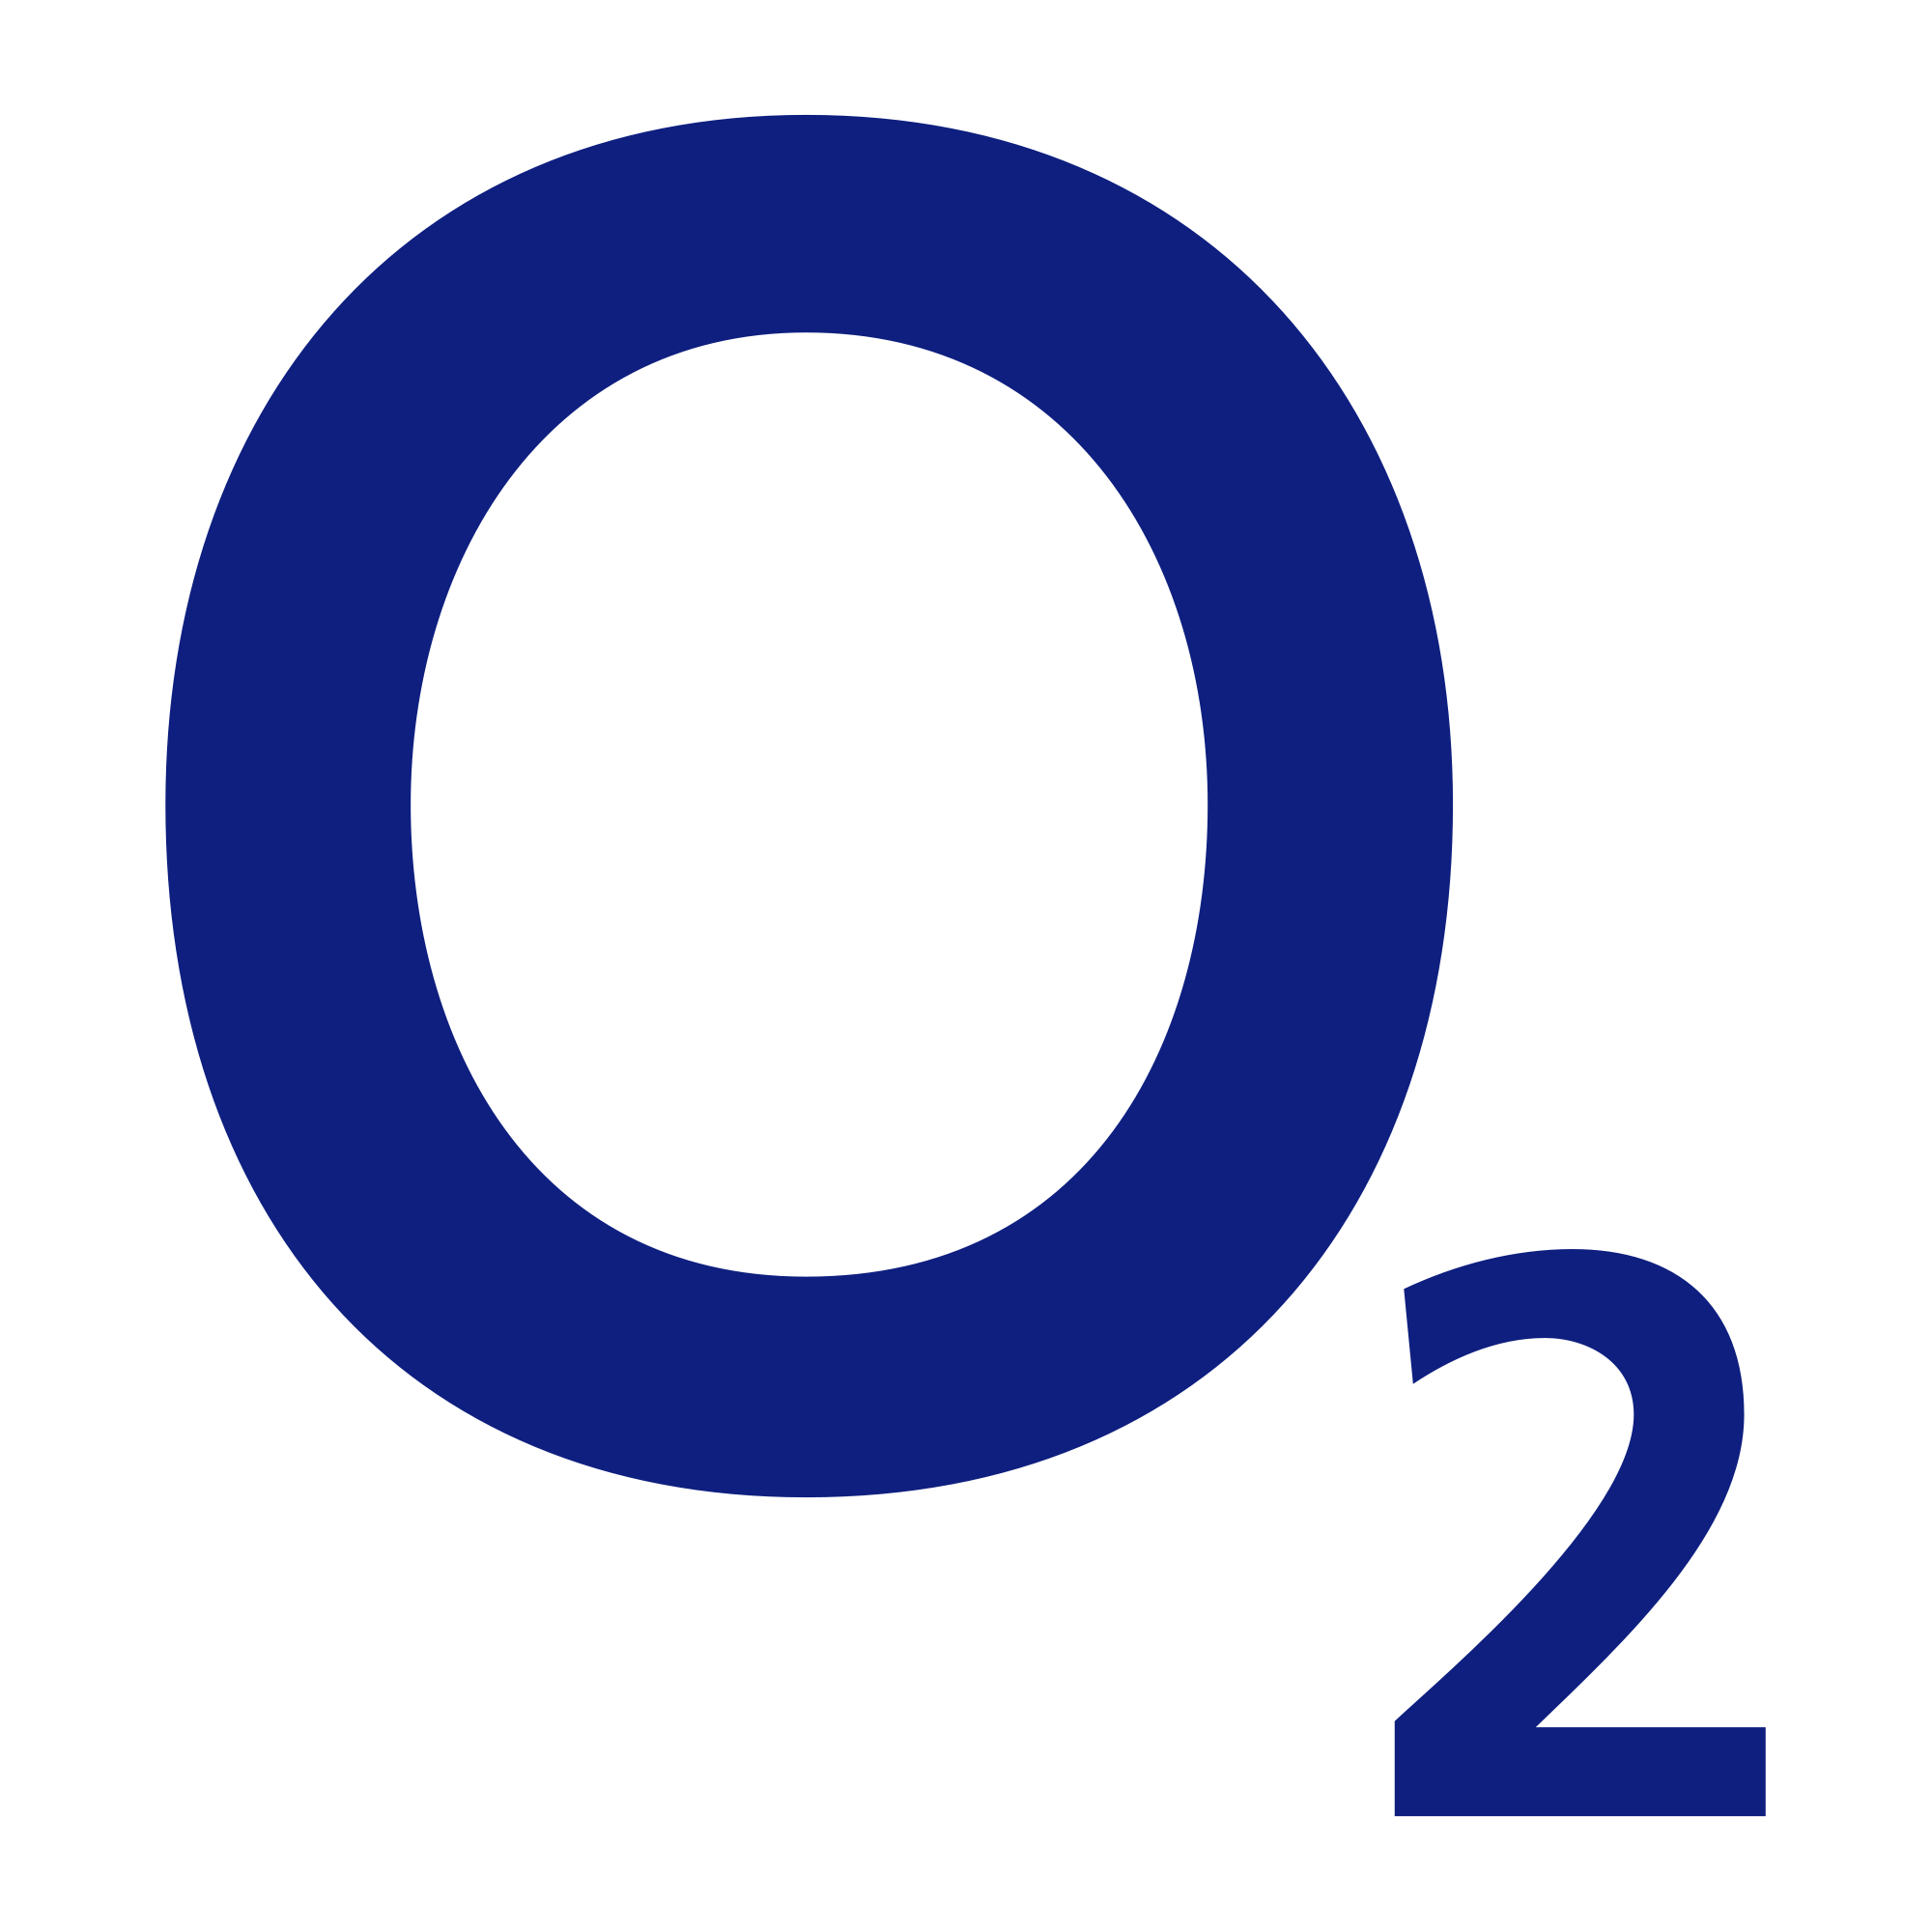 The best O2 phone deals in September 2019